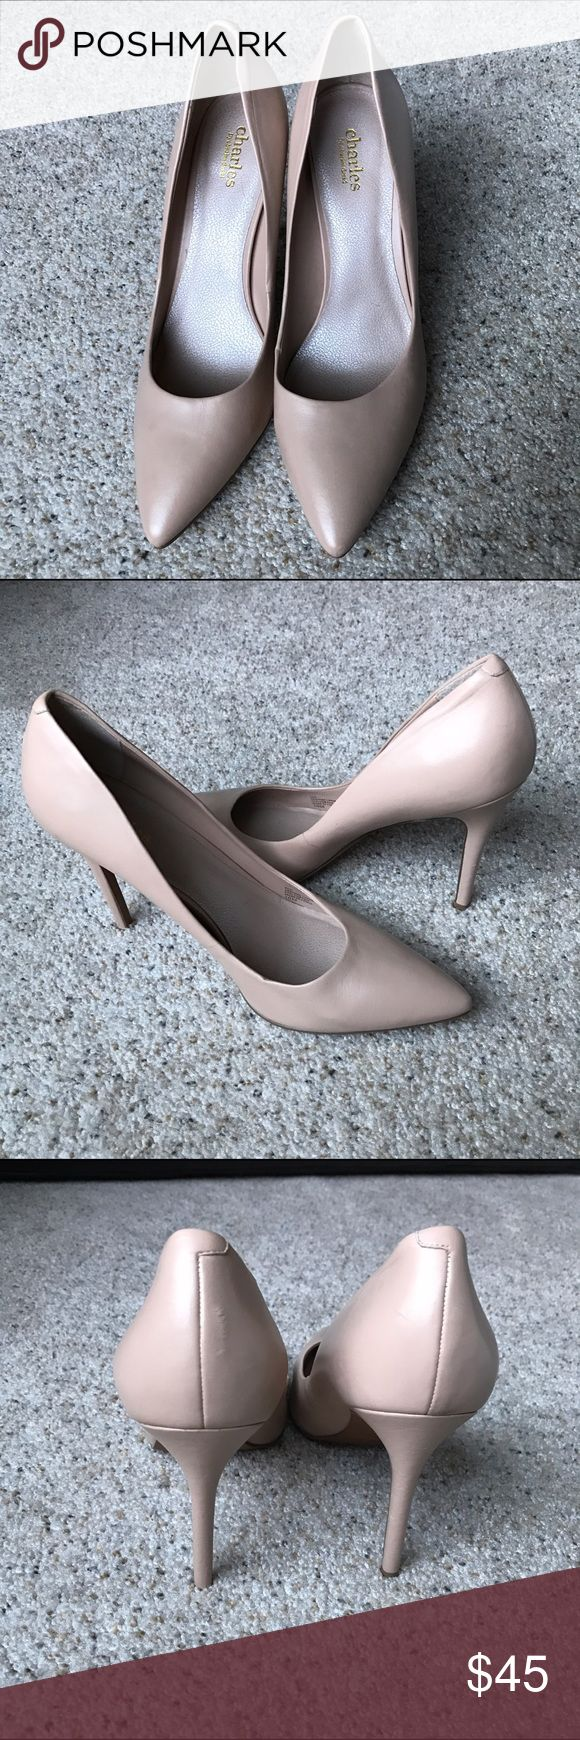 New Charles David Nude Pumps New without box Charles David Shoes Heels